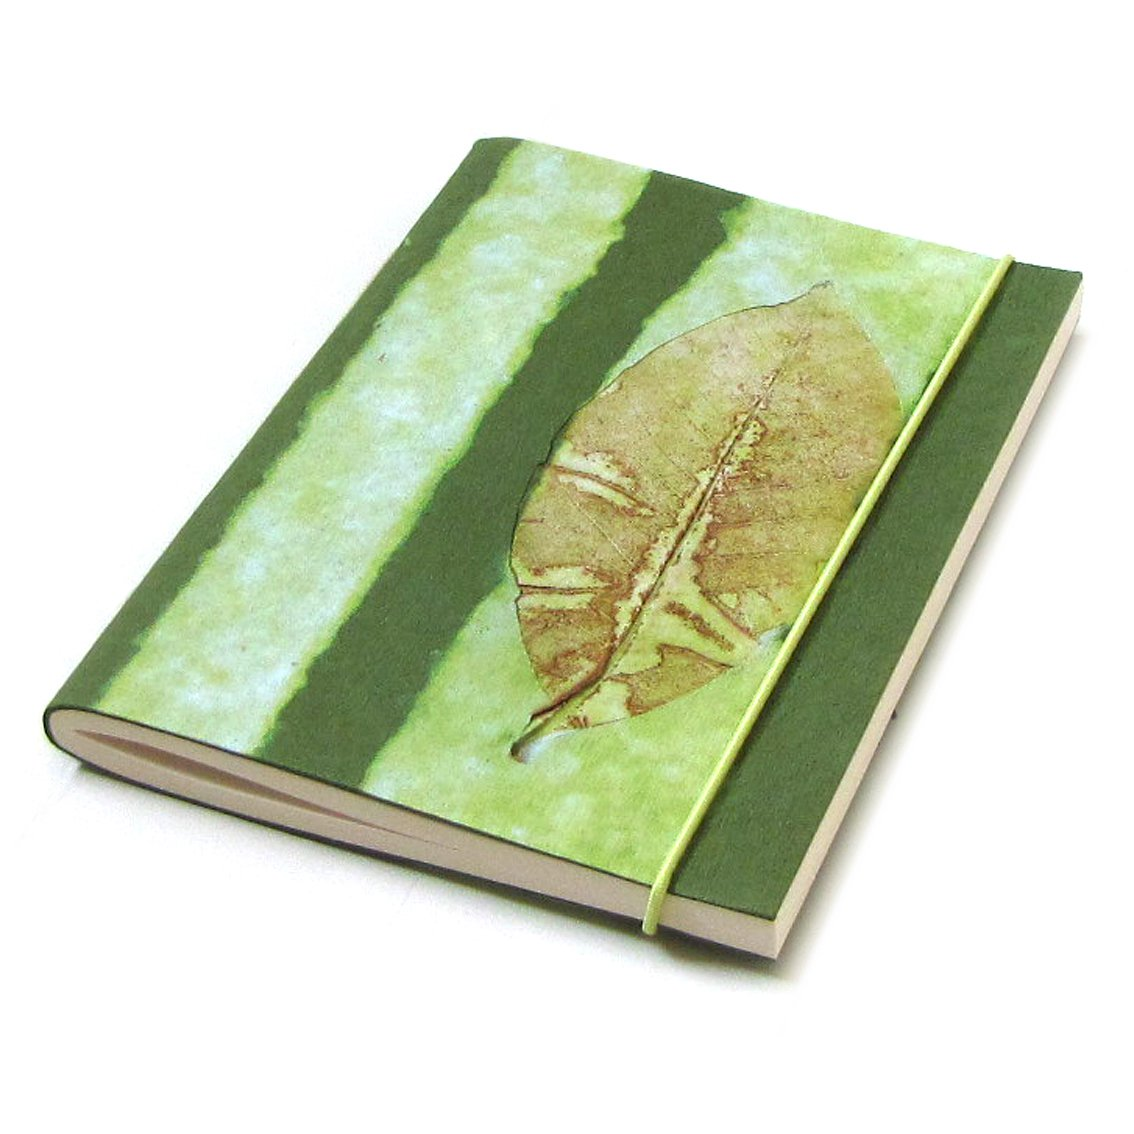 Journal guest book notebook handmade paper notebook striped green bday mom xmas gifts 5x7 88pp